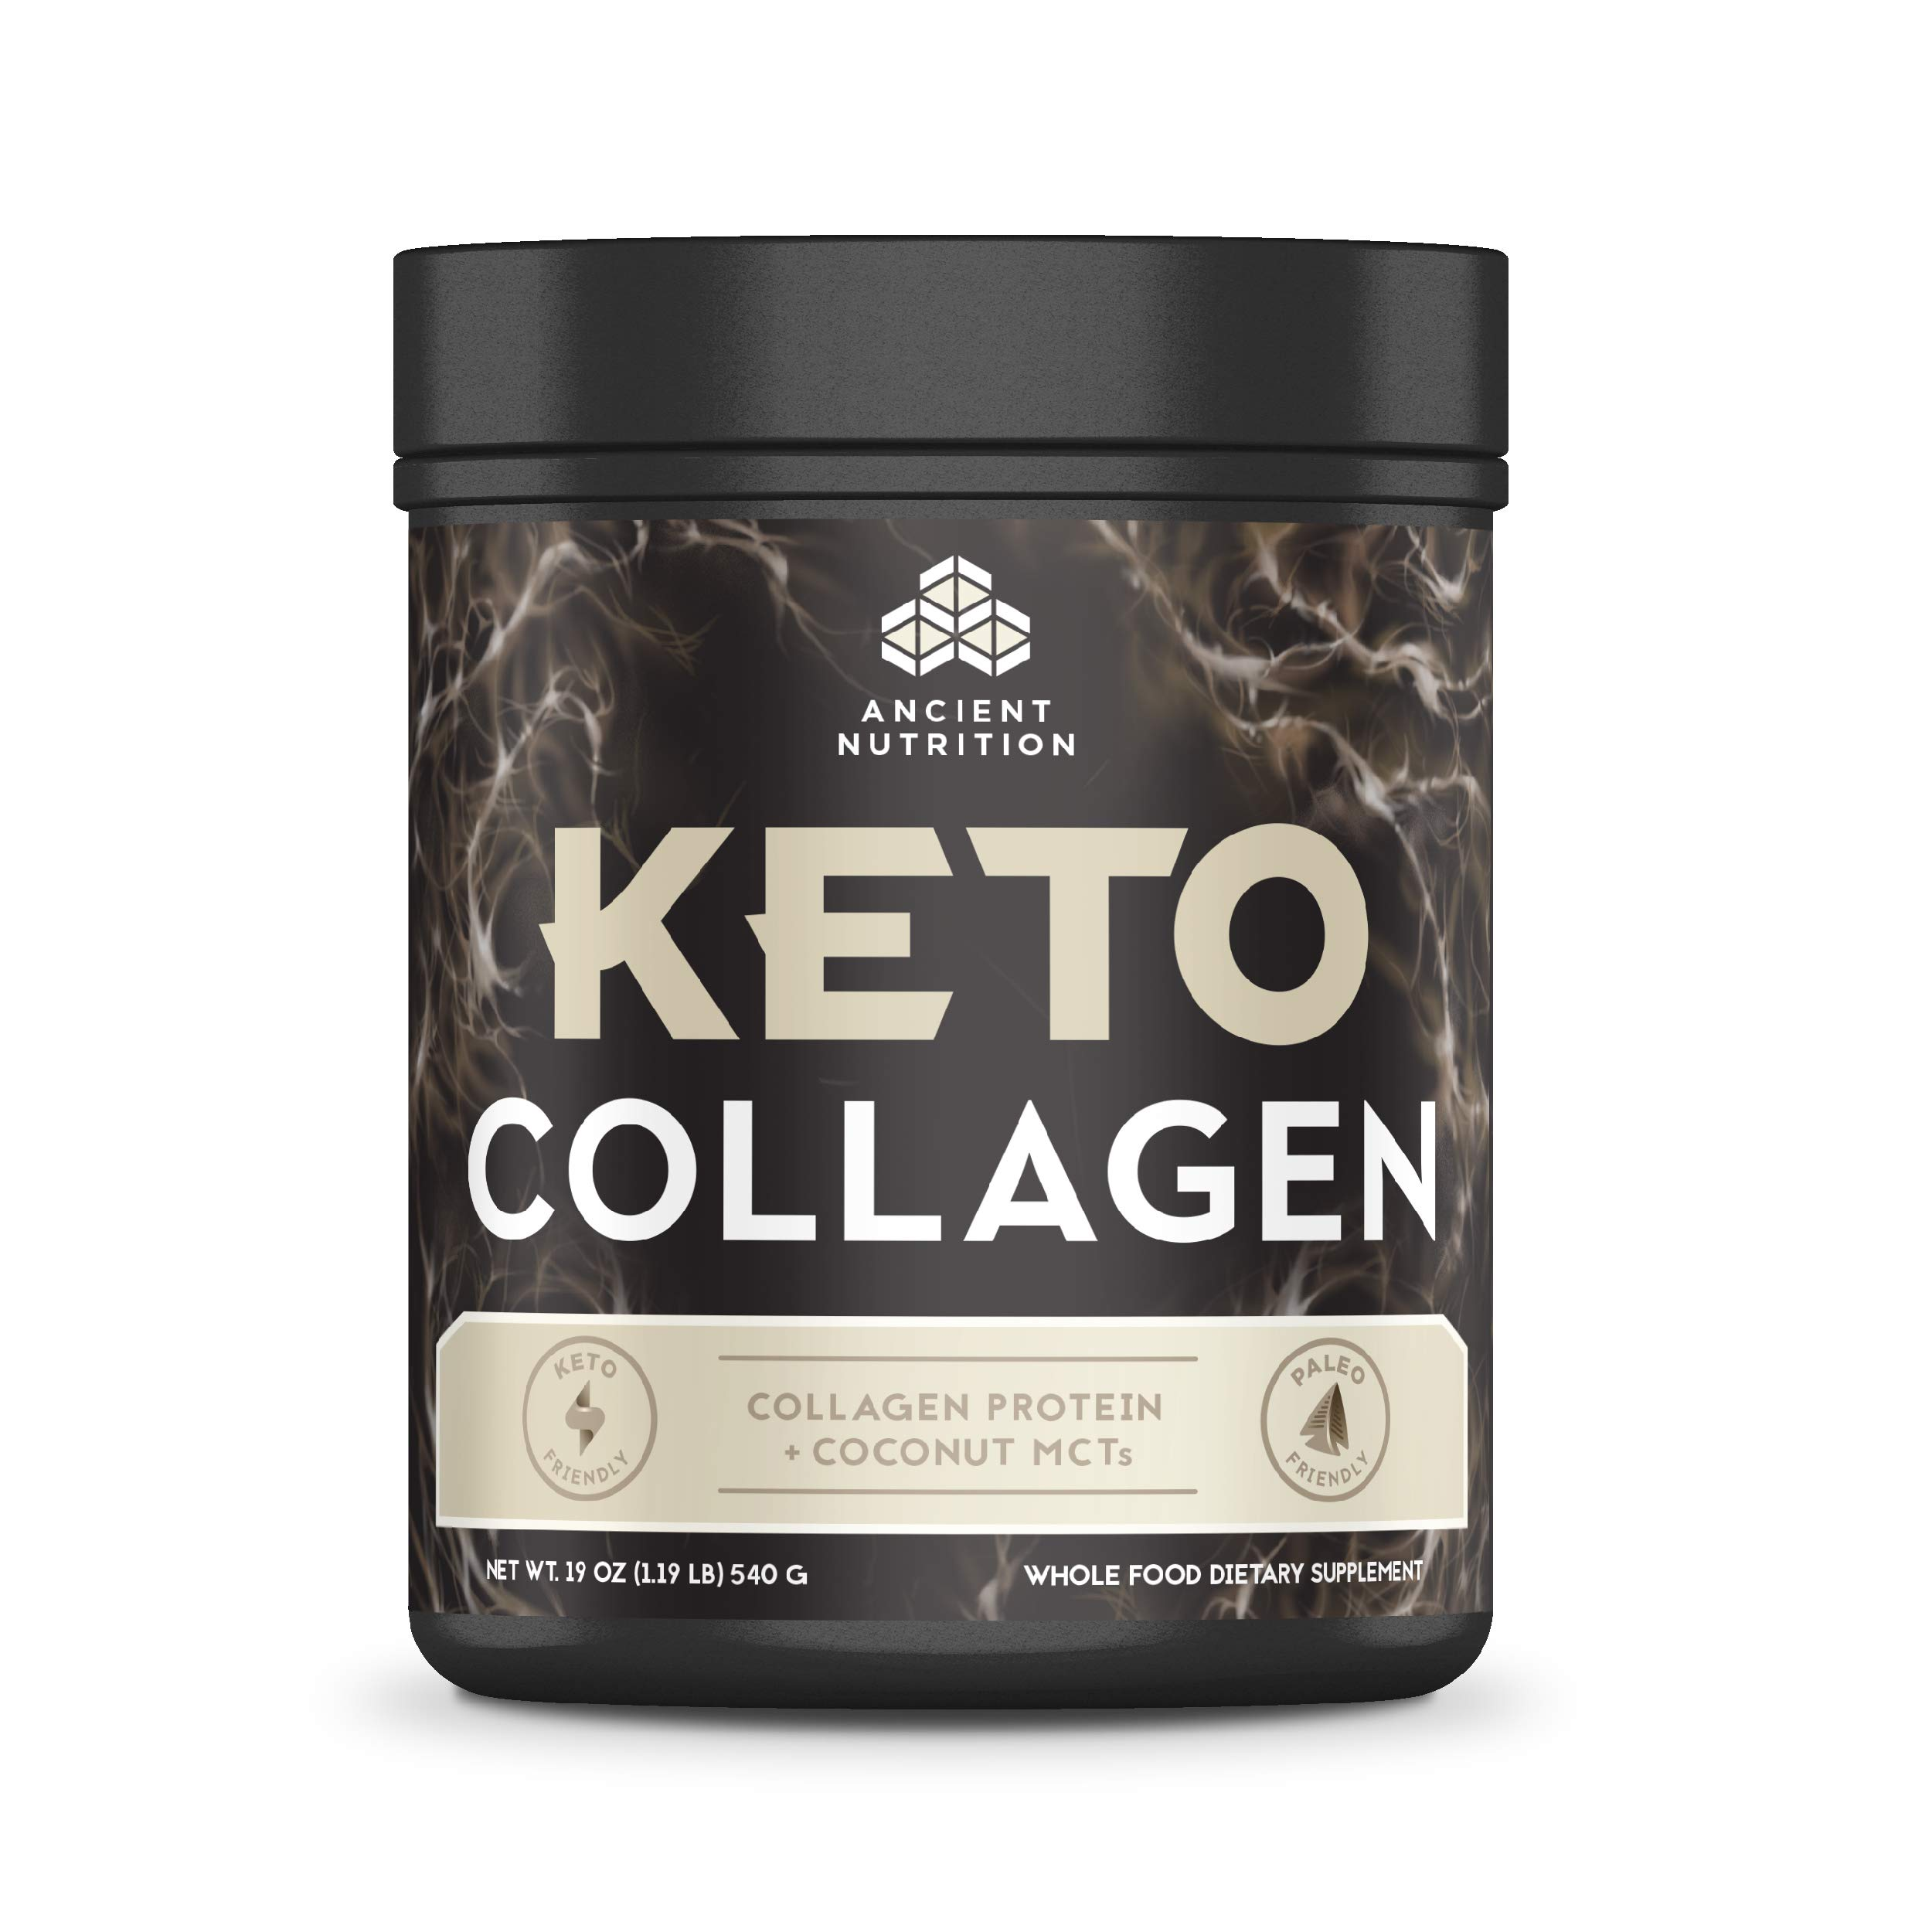 Ancient Nutrition KetoCOLLAGEN Powder, Keto Diet Supplement, Types I and III Collagen Plus Coconut MCTs, Pure Flavor, 30 Servings, 19 oz by Ancient Nutrition